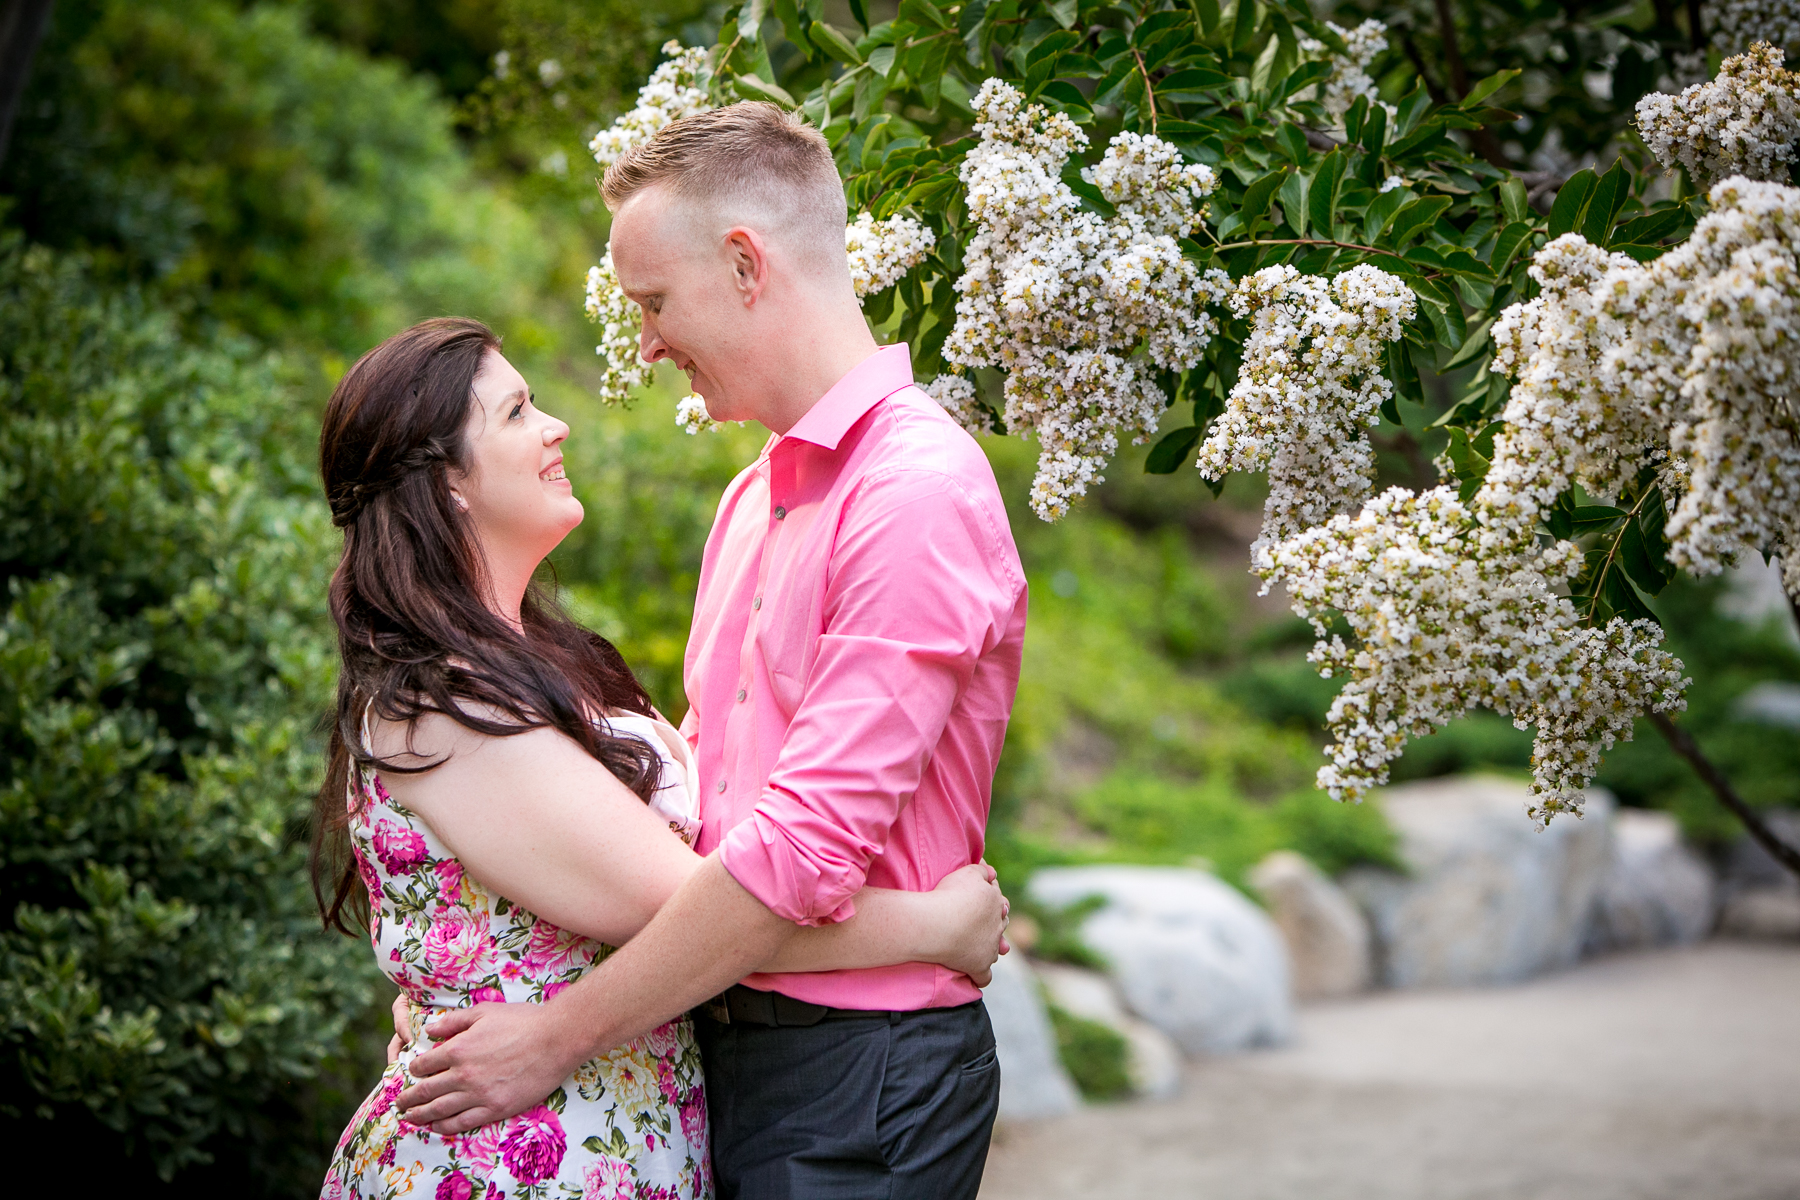 pink floral dress and pink dress shirt pop in garden engagement session photo